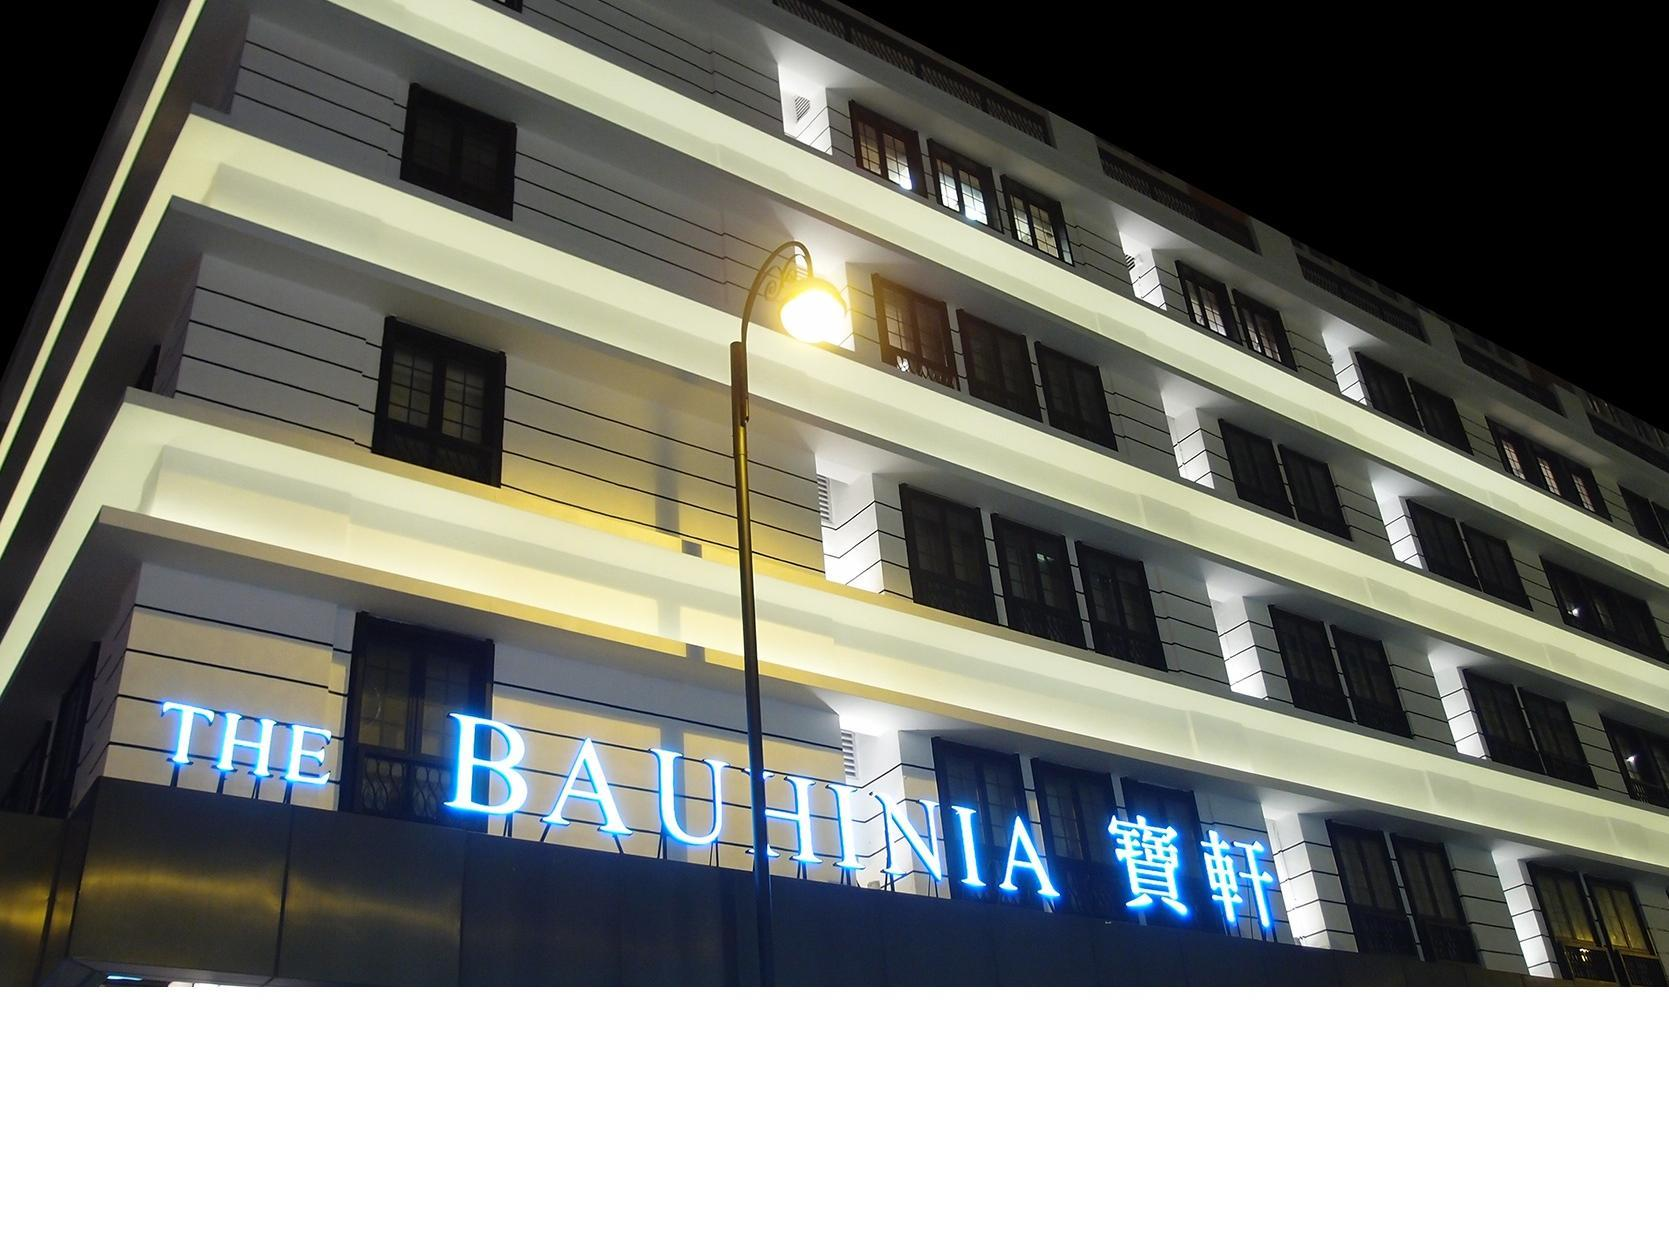 The Bauhinia Hotel - Central Honkongas